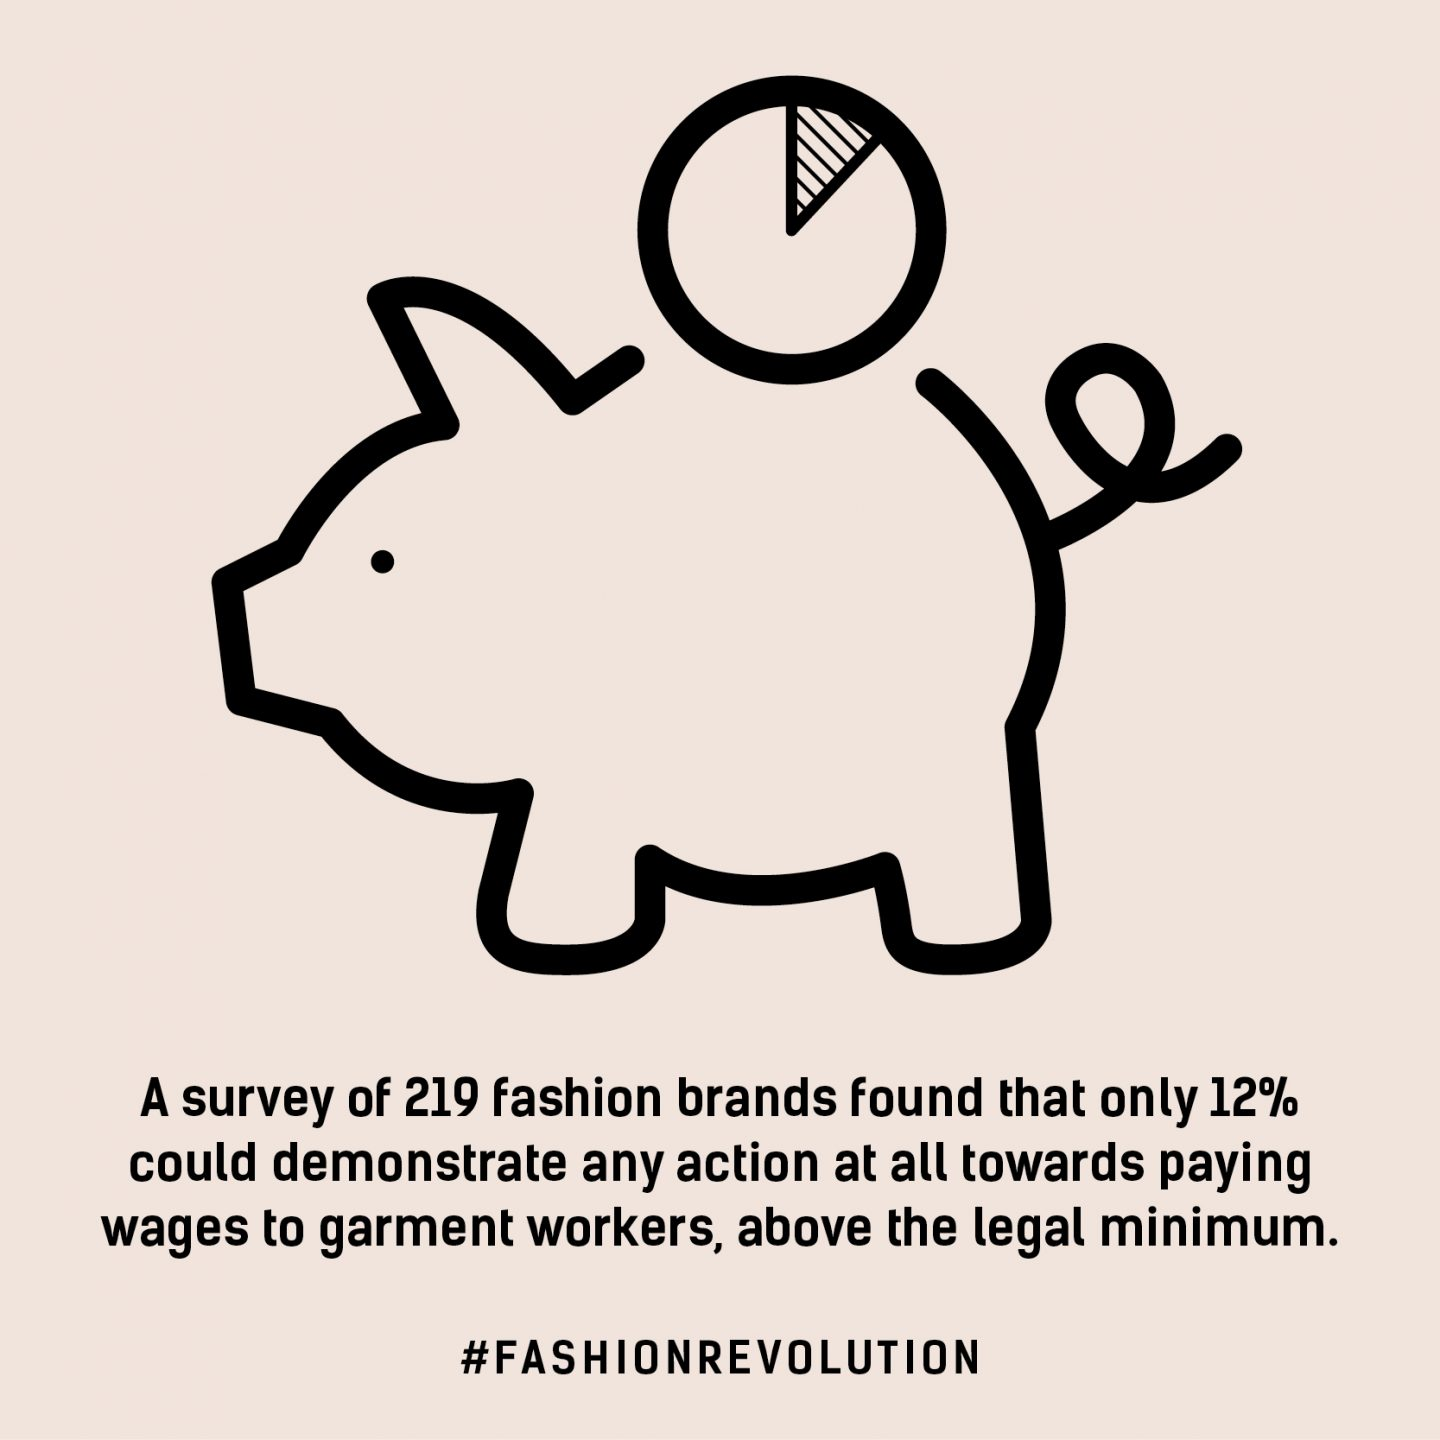 Fashion Revolution infographic stating only 12% of fashion companies can prove they are tackling low wages for garment workers